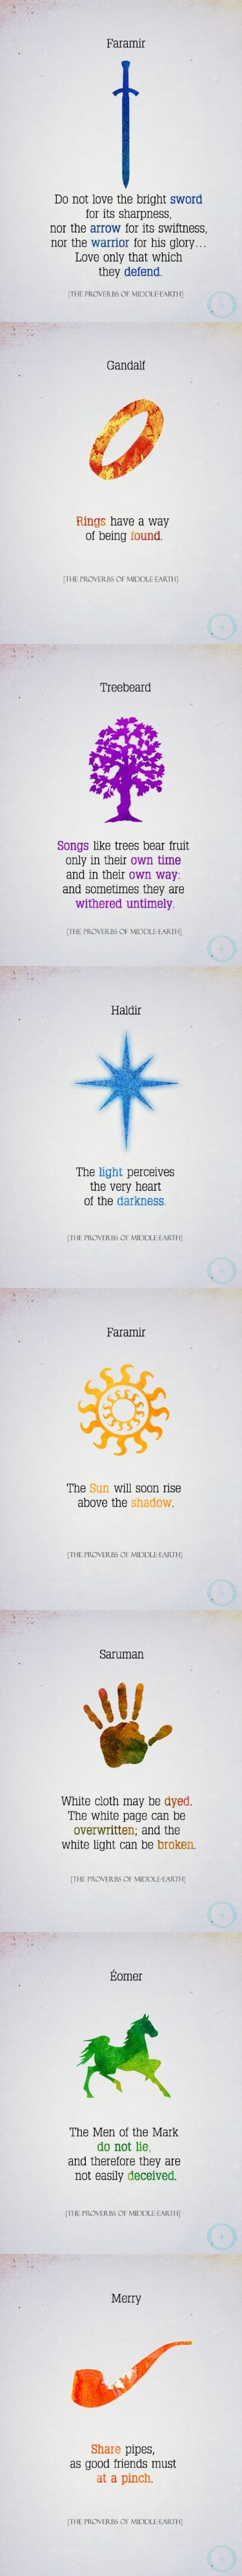 The Proverbs of Middle-Earth. Faramir's first one, though. <3